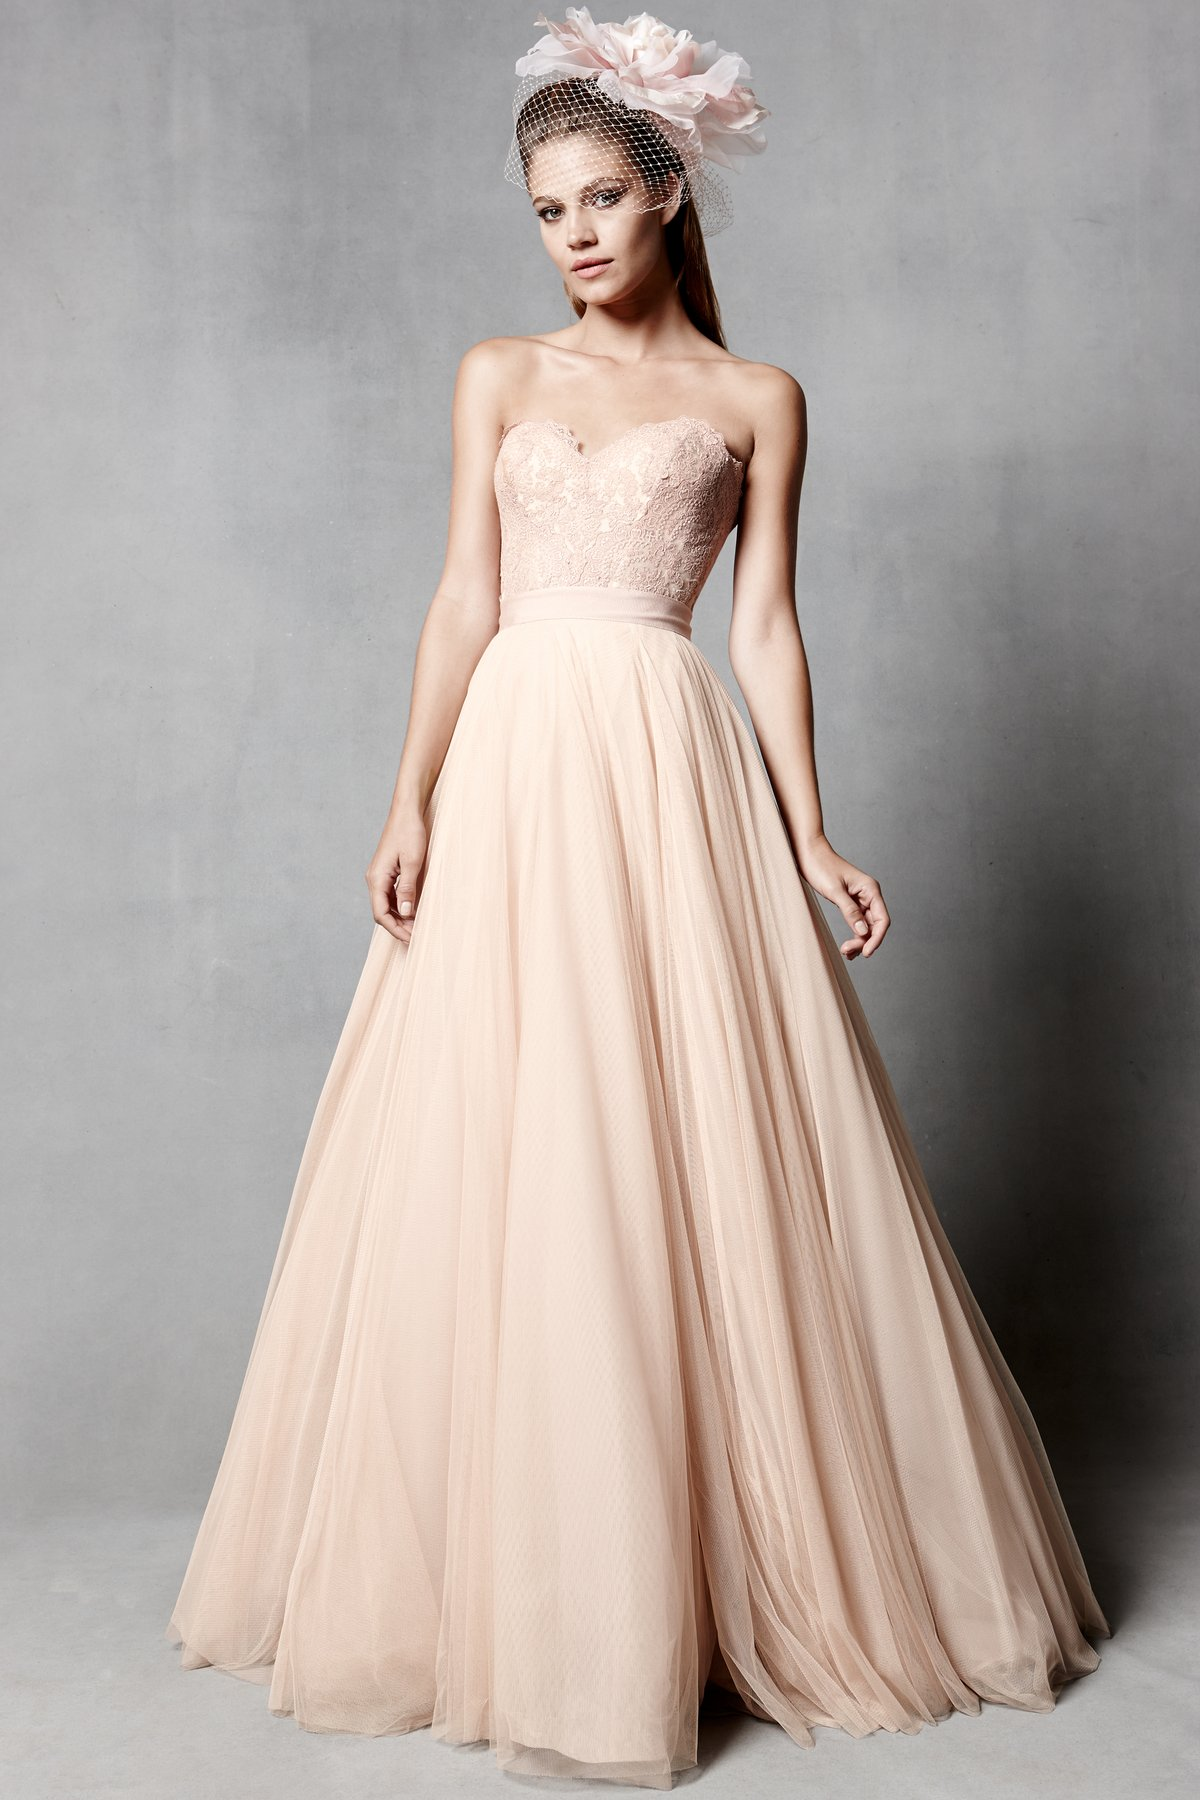 detachable skirt to go with wedding dress detachable wedding dresses Detachable skirt to go with wedding dress